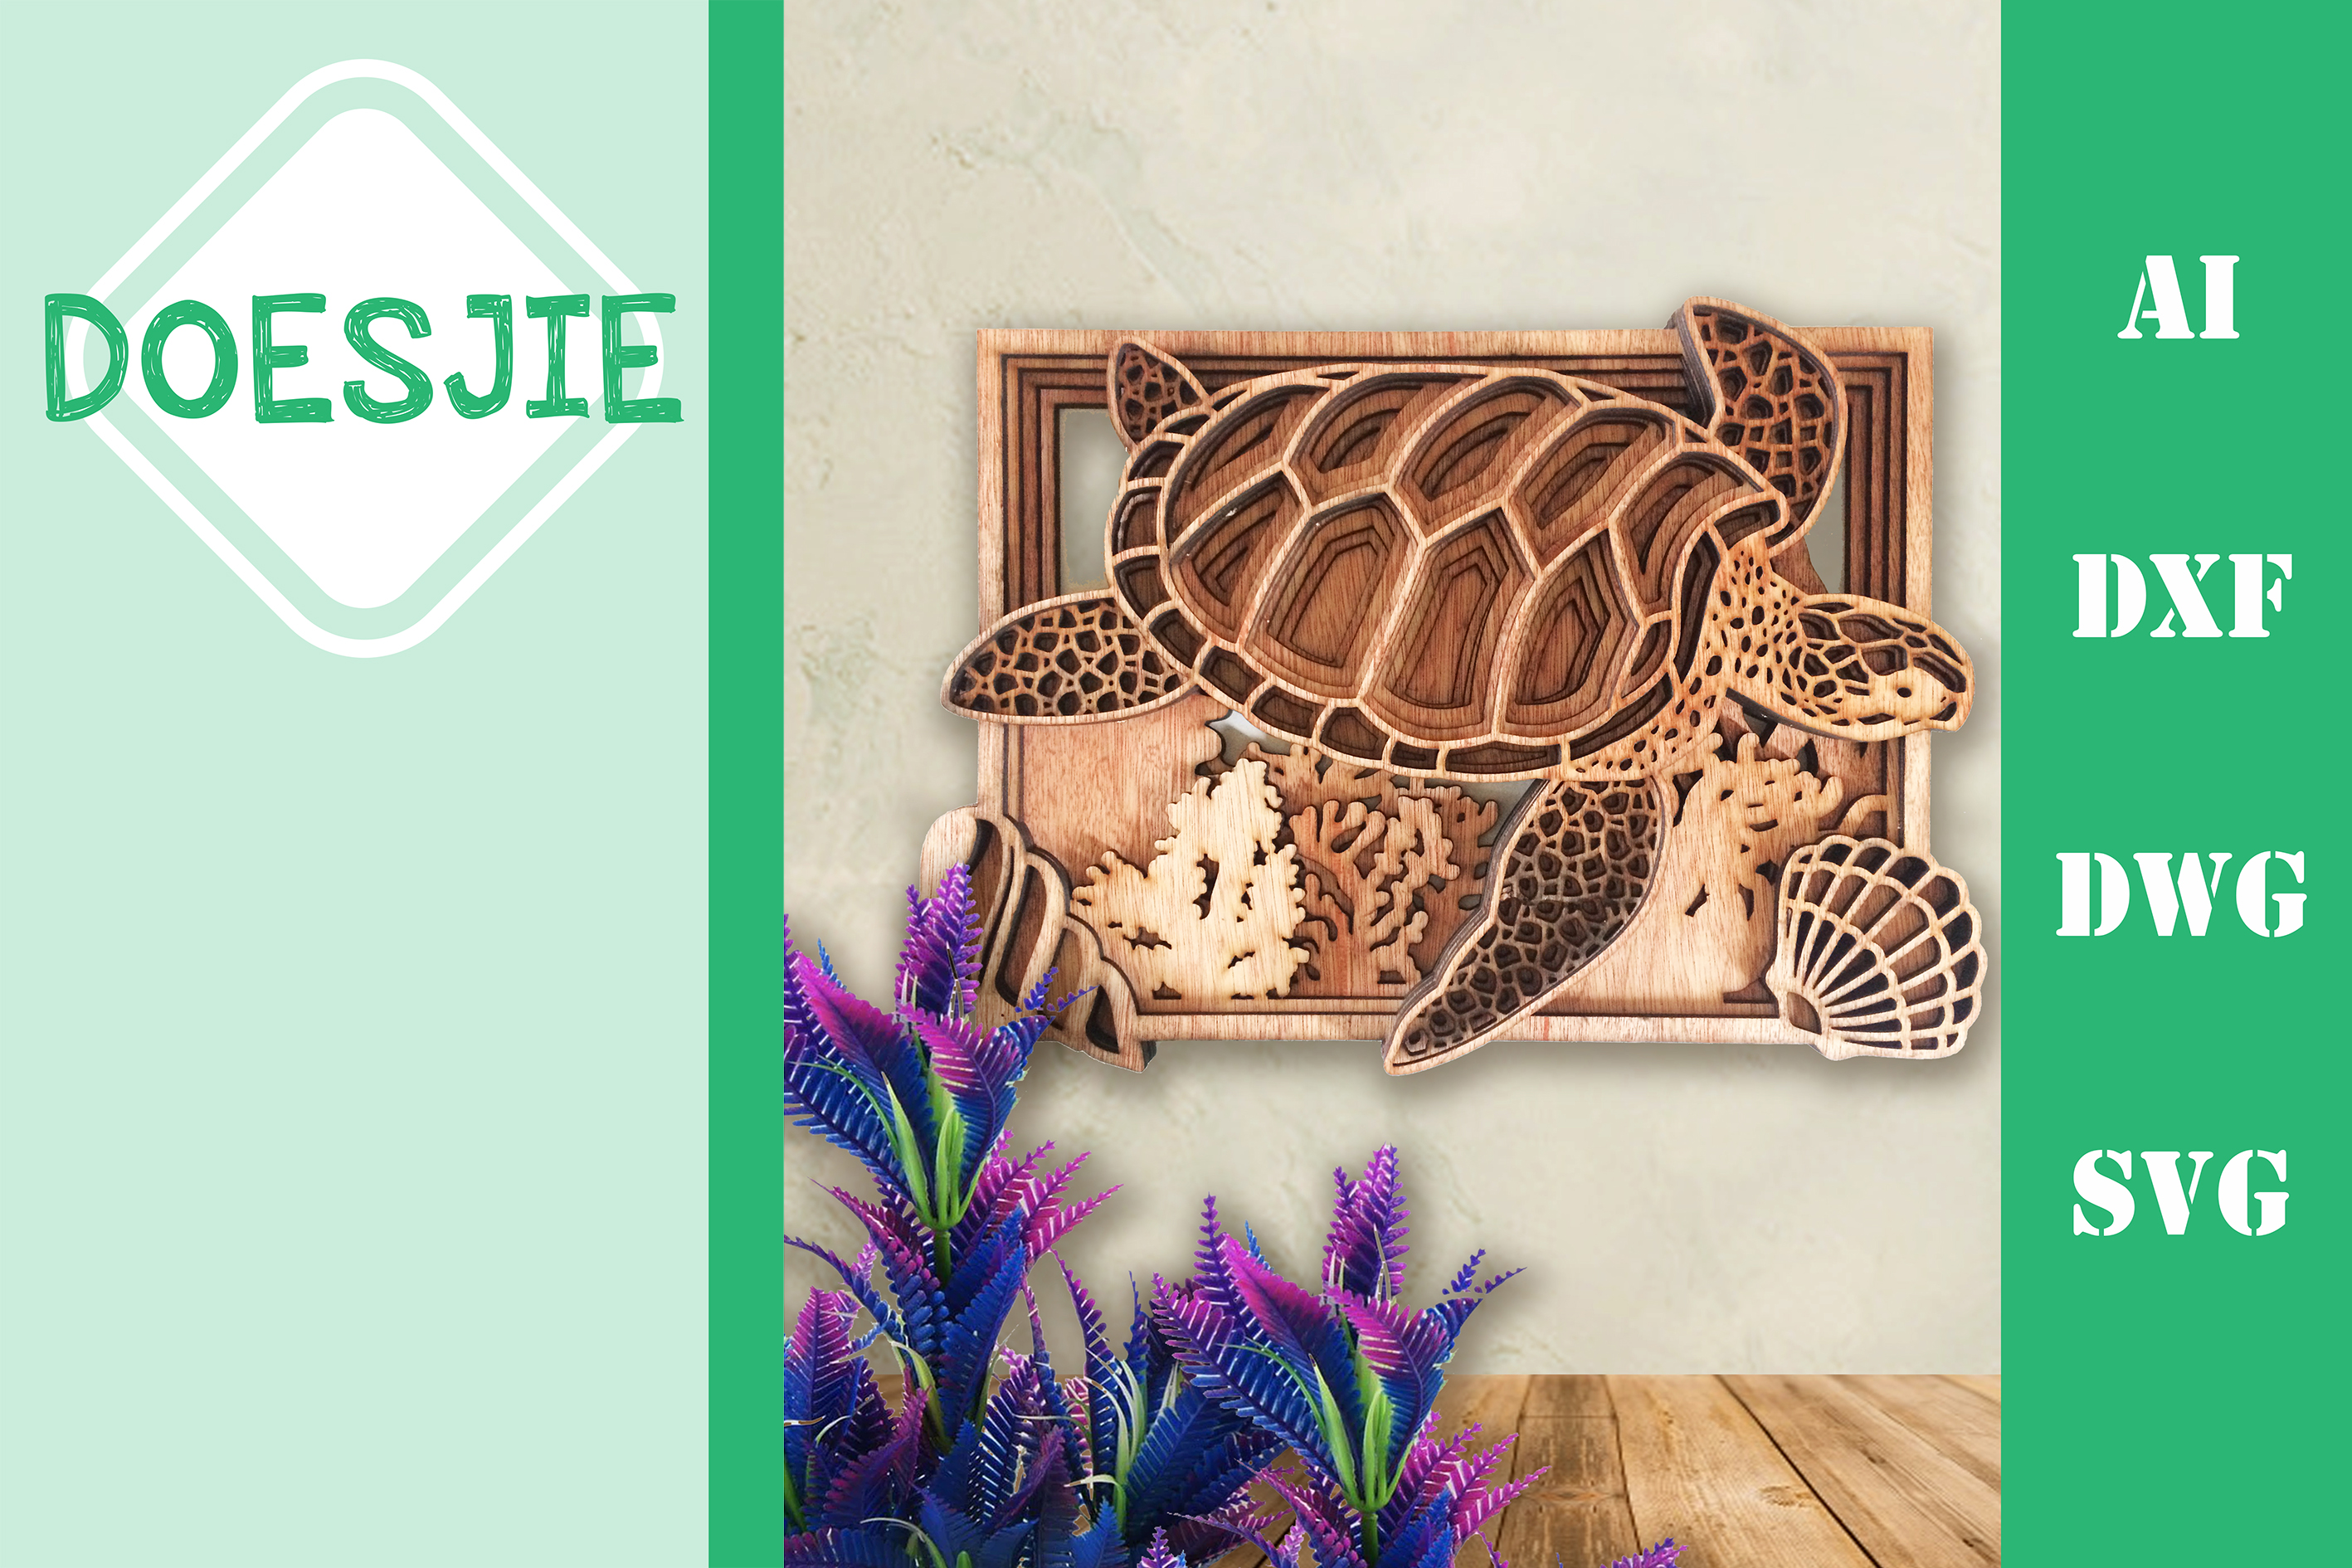 Download Free Multi Layer Mandala Sea Turtle Ocean Grafico Por Doesjie for Cricut Explore, Silhouette and other cutting machines.